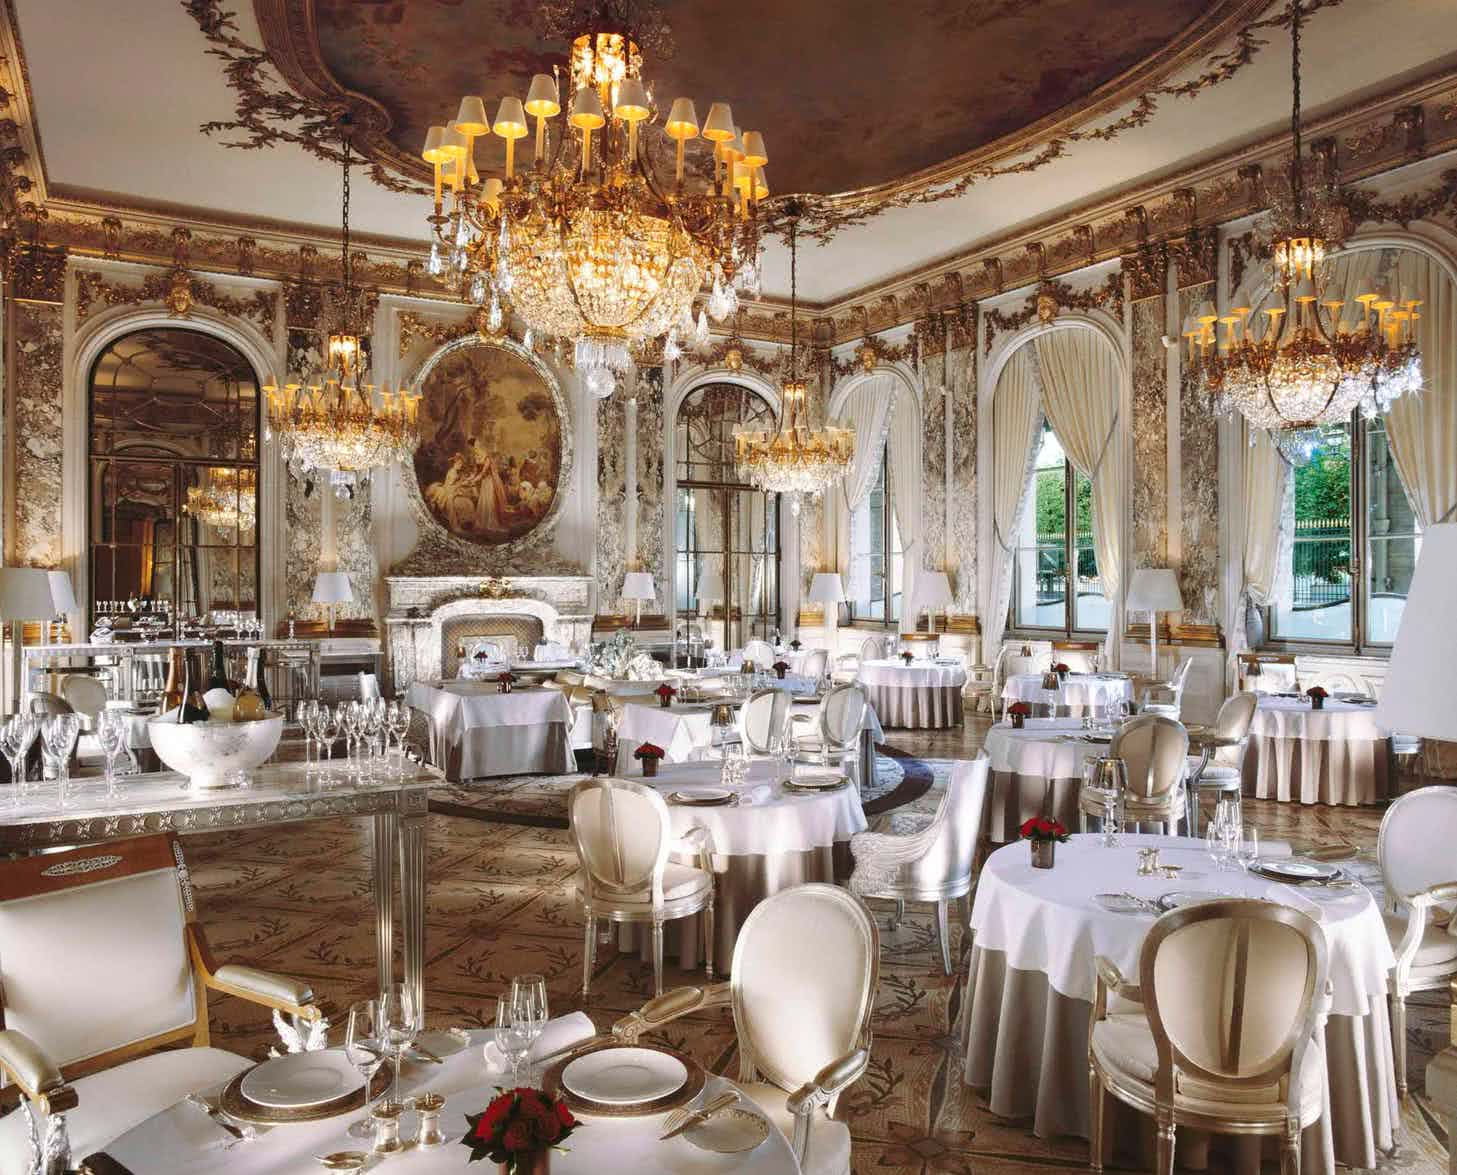 Luxurious interior of a restaurant with chandeliers - Bachelorette Party Activities for the Break the Bank Bride